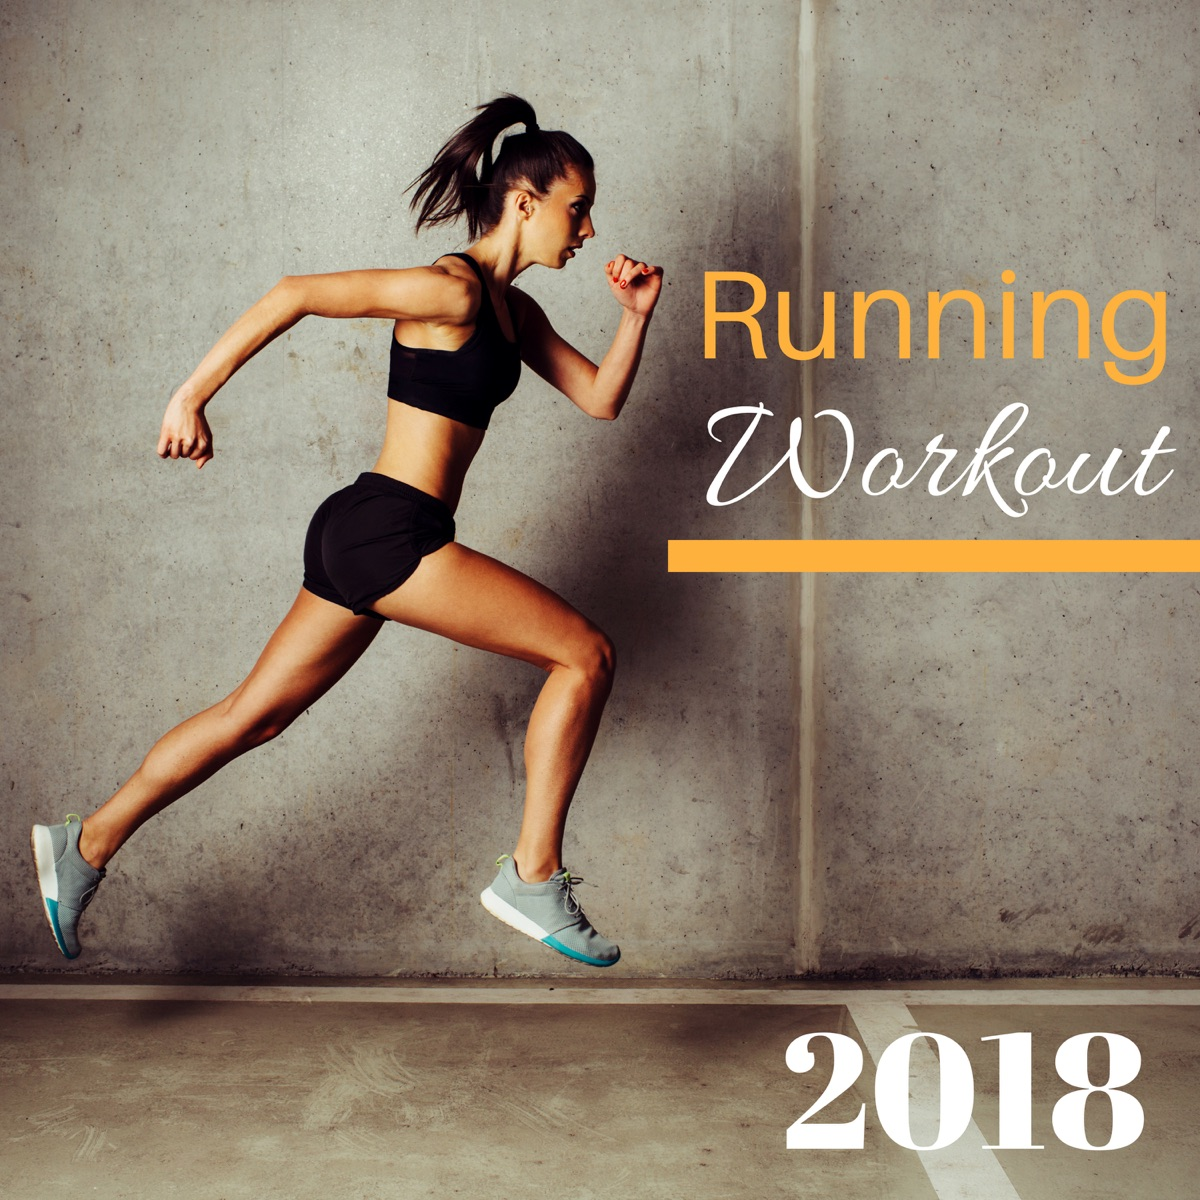 Running Workout 2018 - EDM Upbeat Music World Collection for